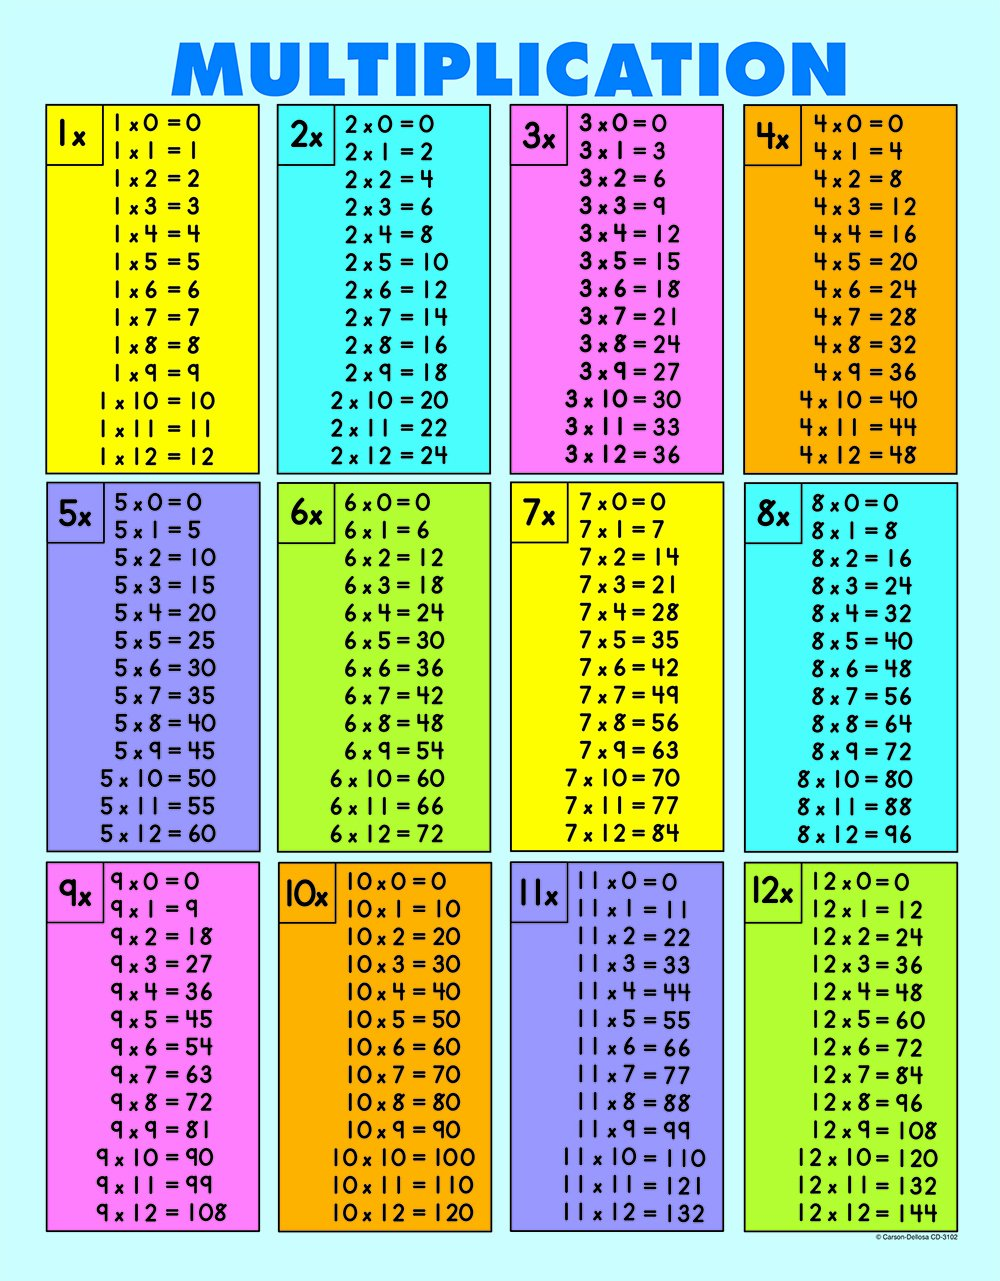 Multiplication facts through 12 popflyboys for Les table de multiplications